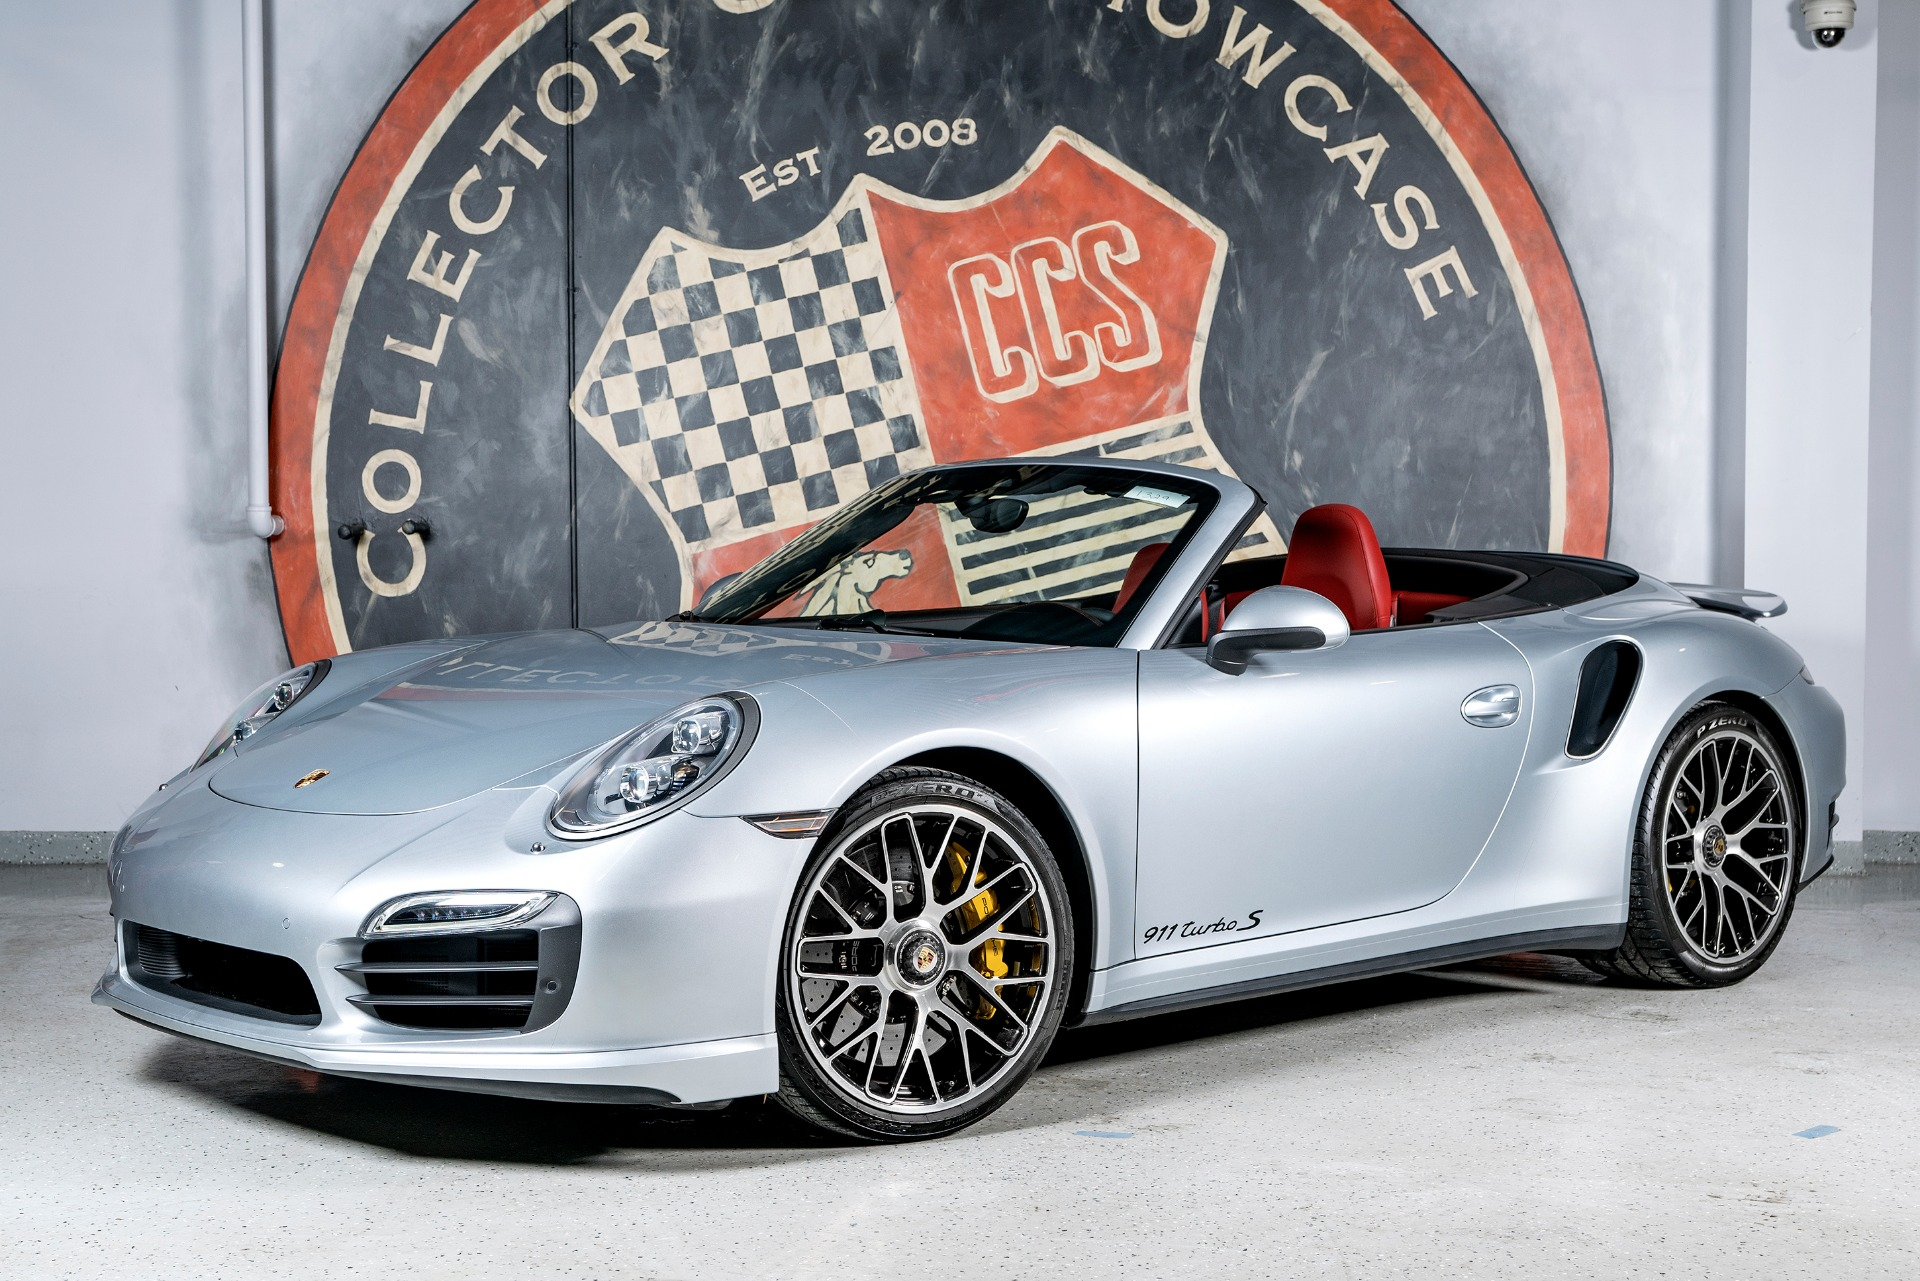 2014 Porsche 911 Turbo S Cabriolet Stock 1329 For Sale